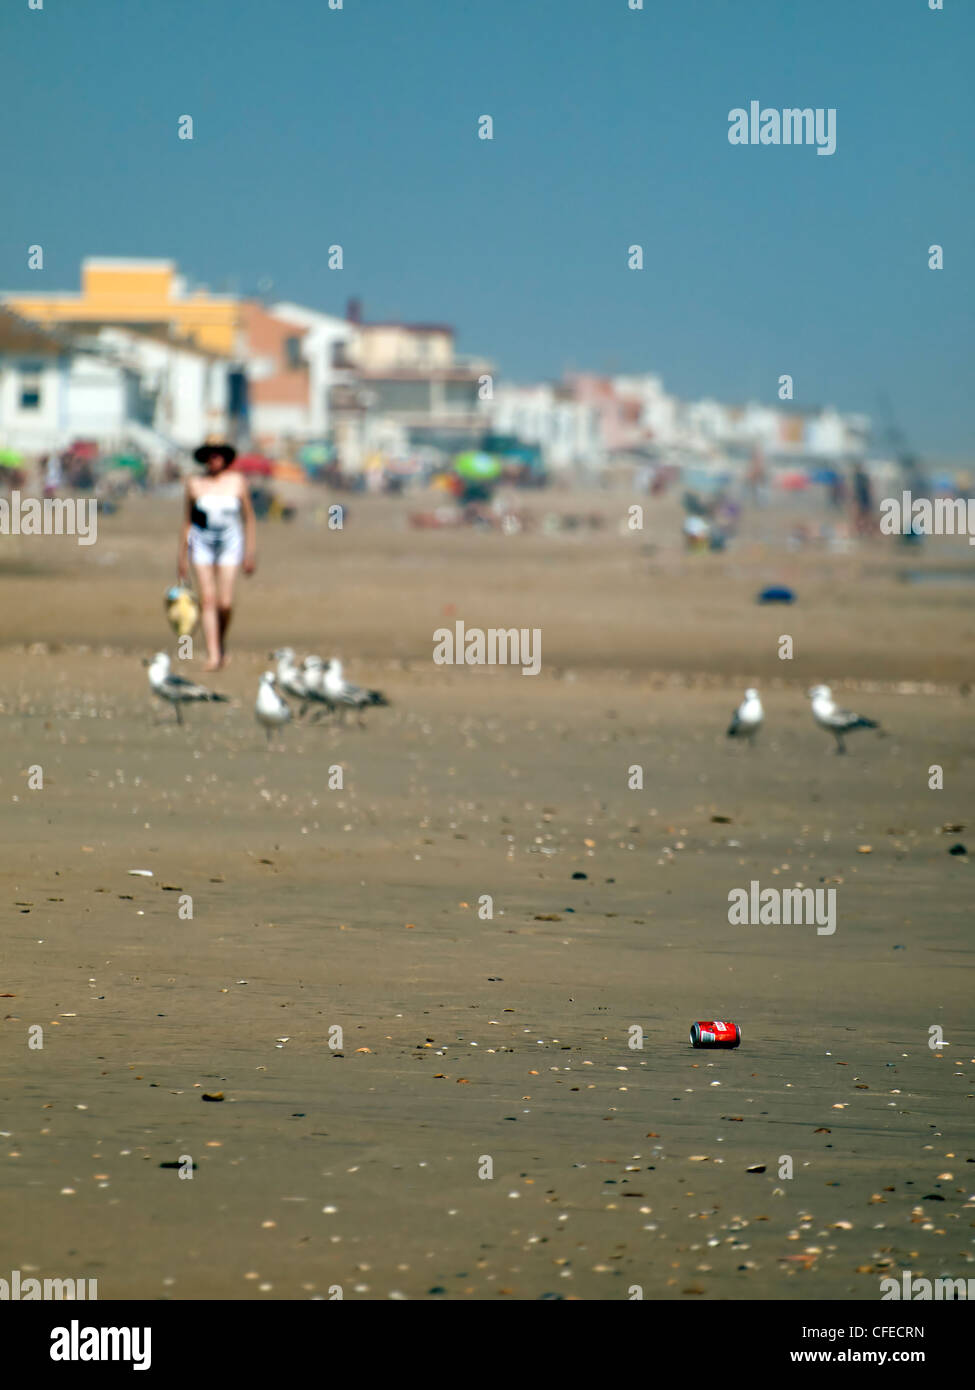 some rubbish in the beach - Stock Image